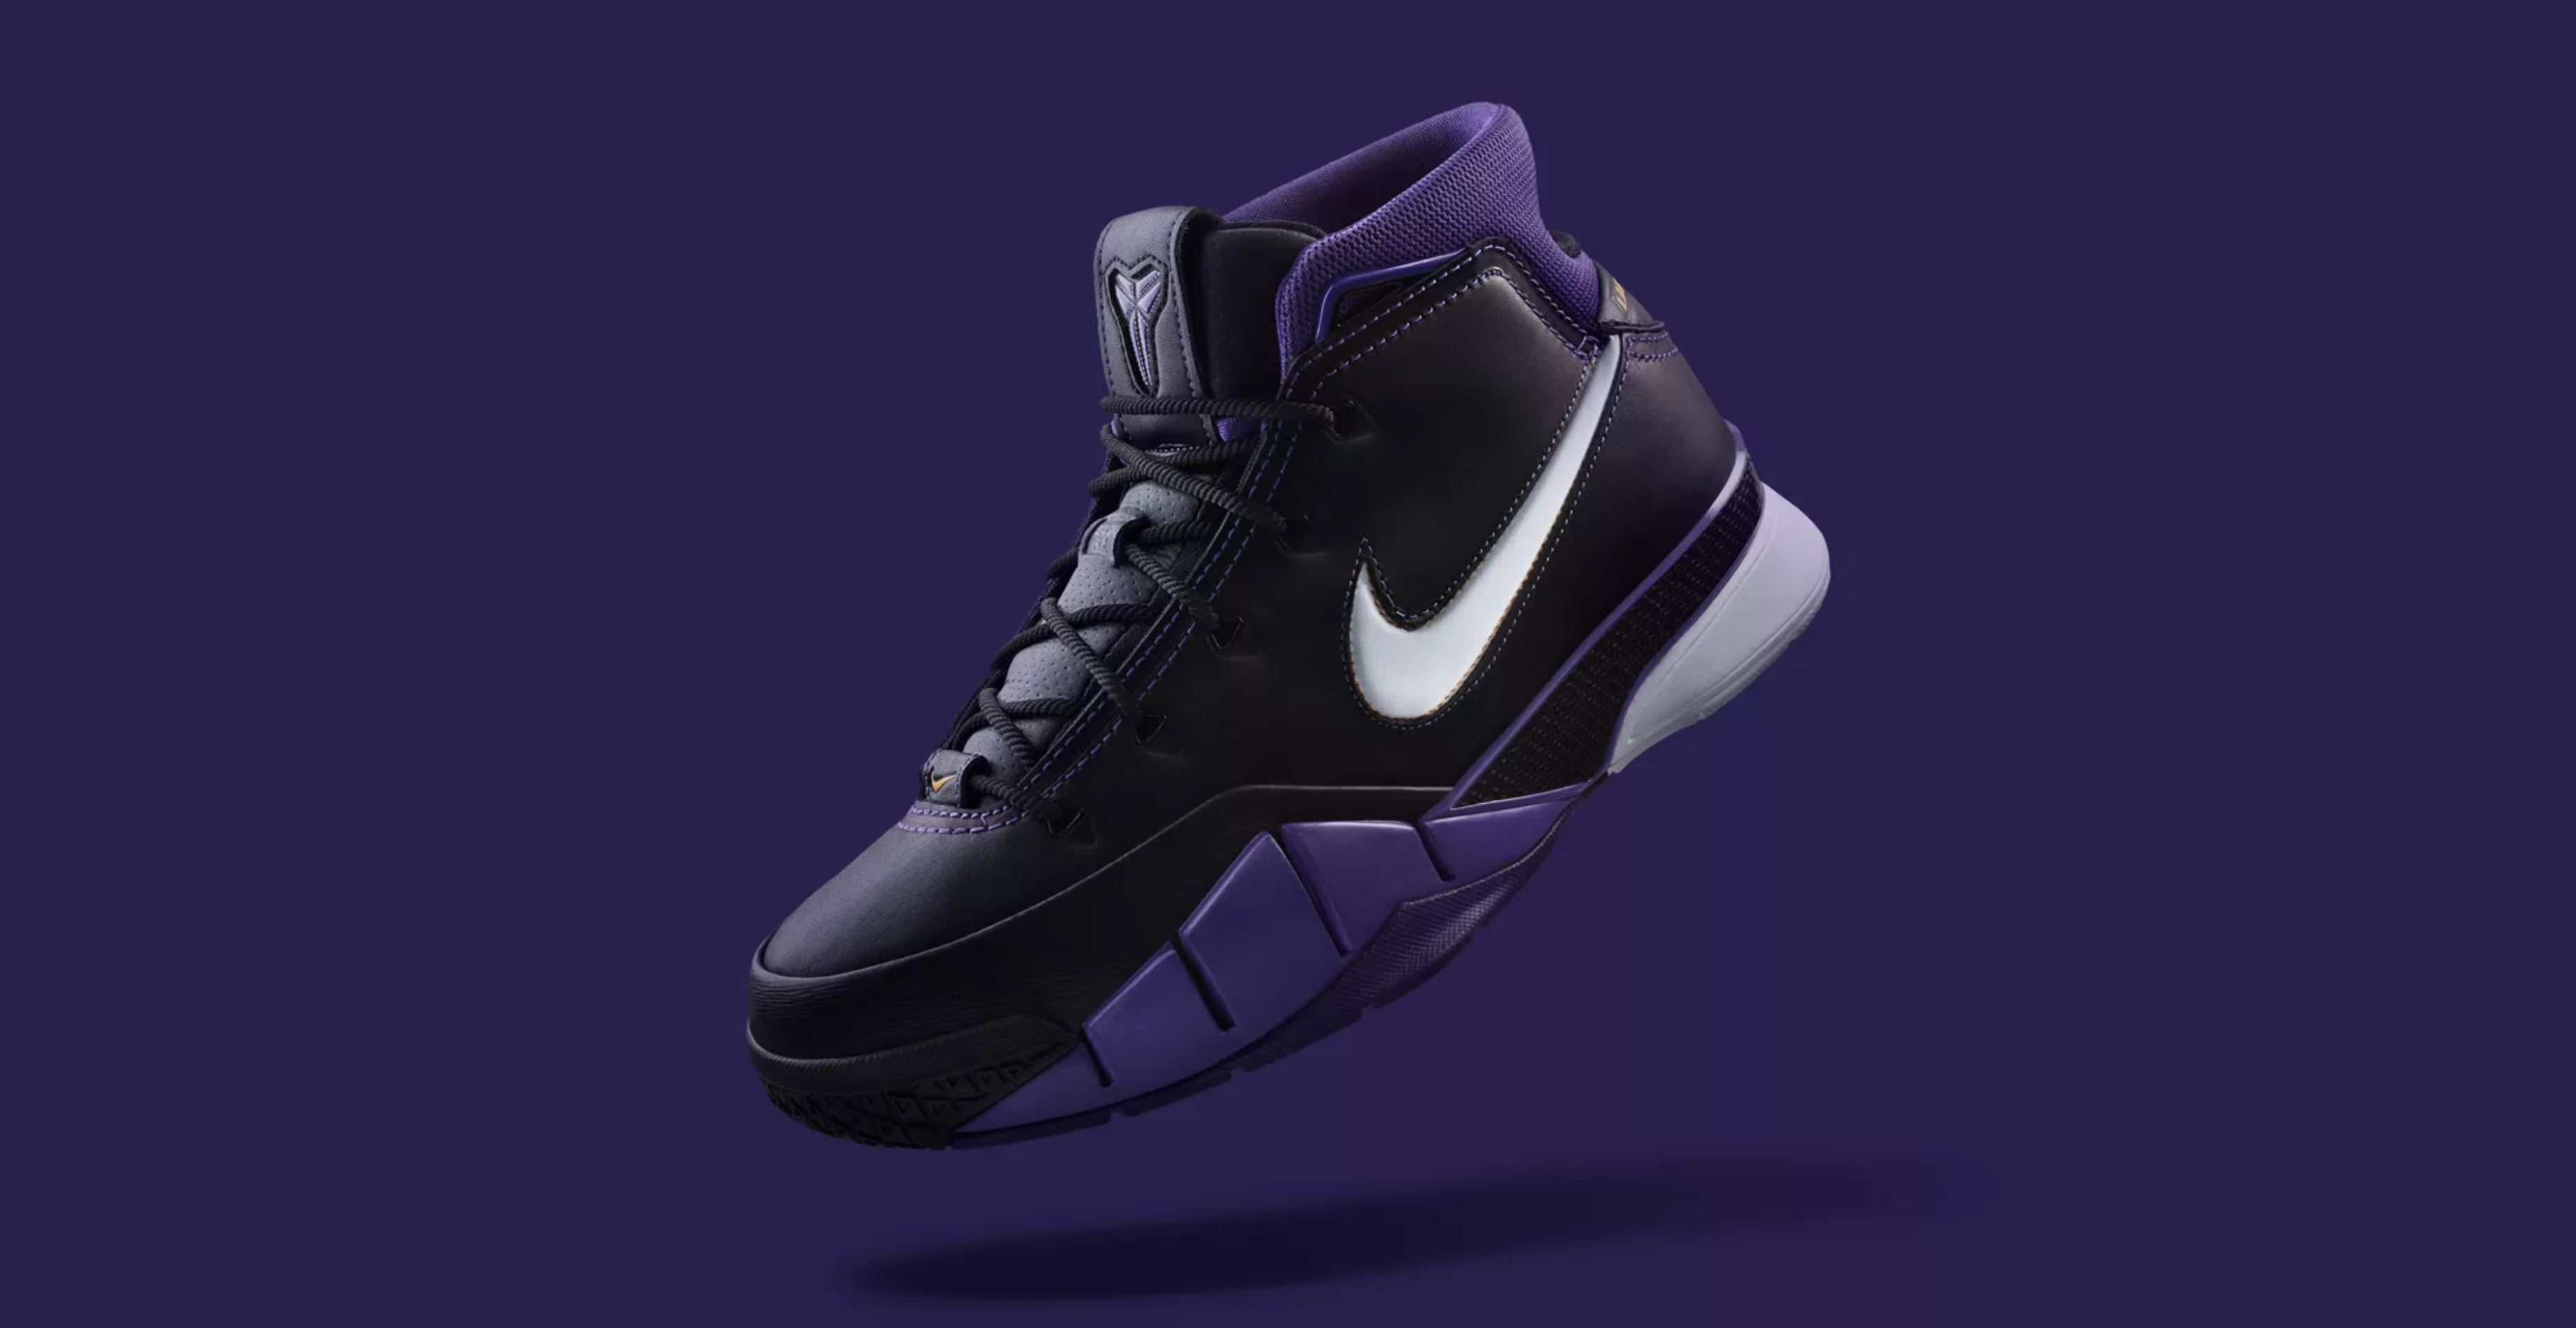 pictures of all kobe bryant shoes